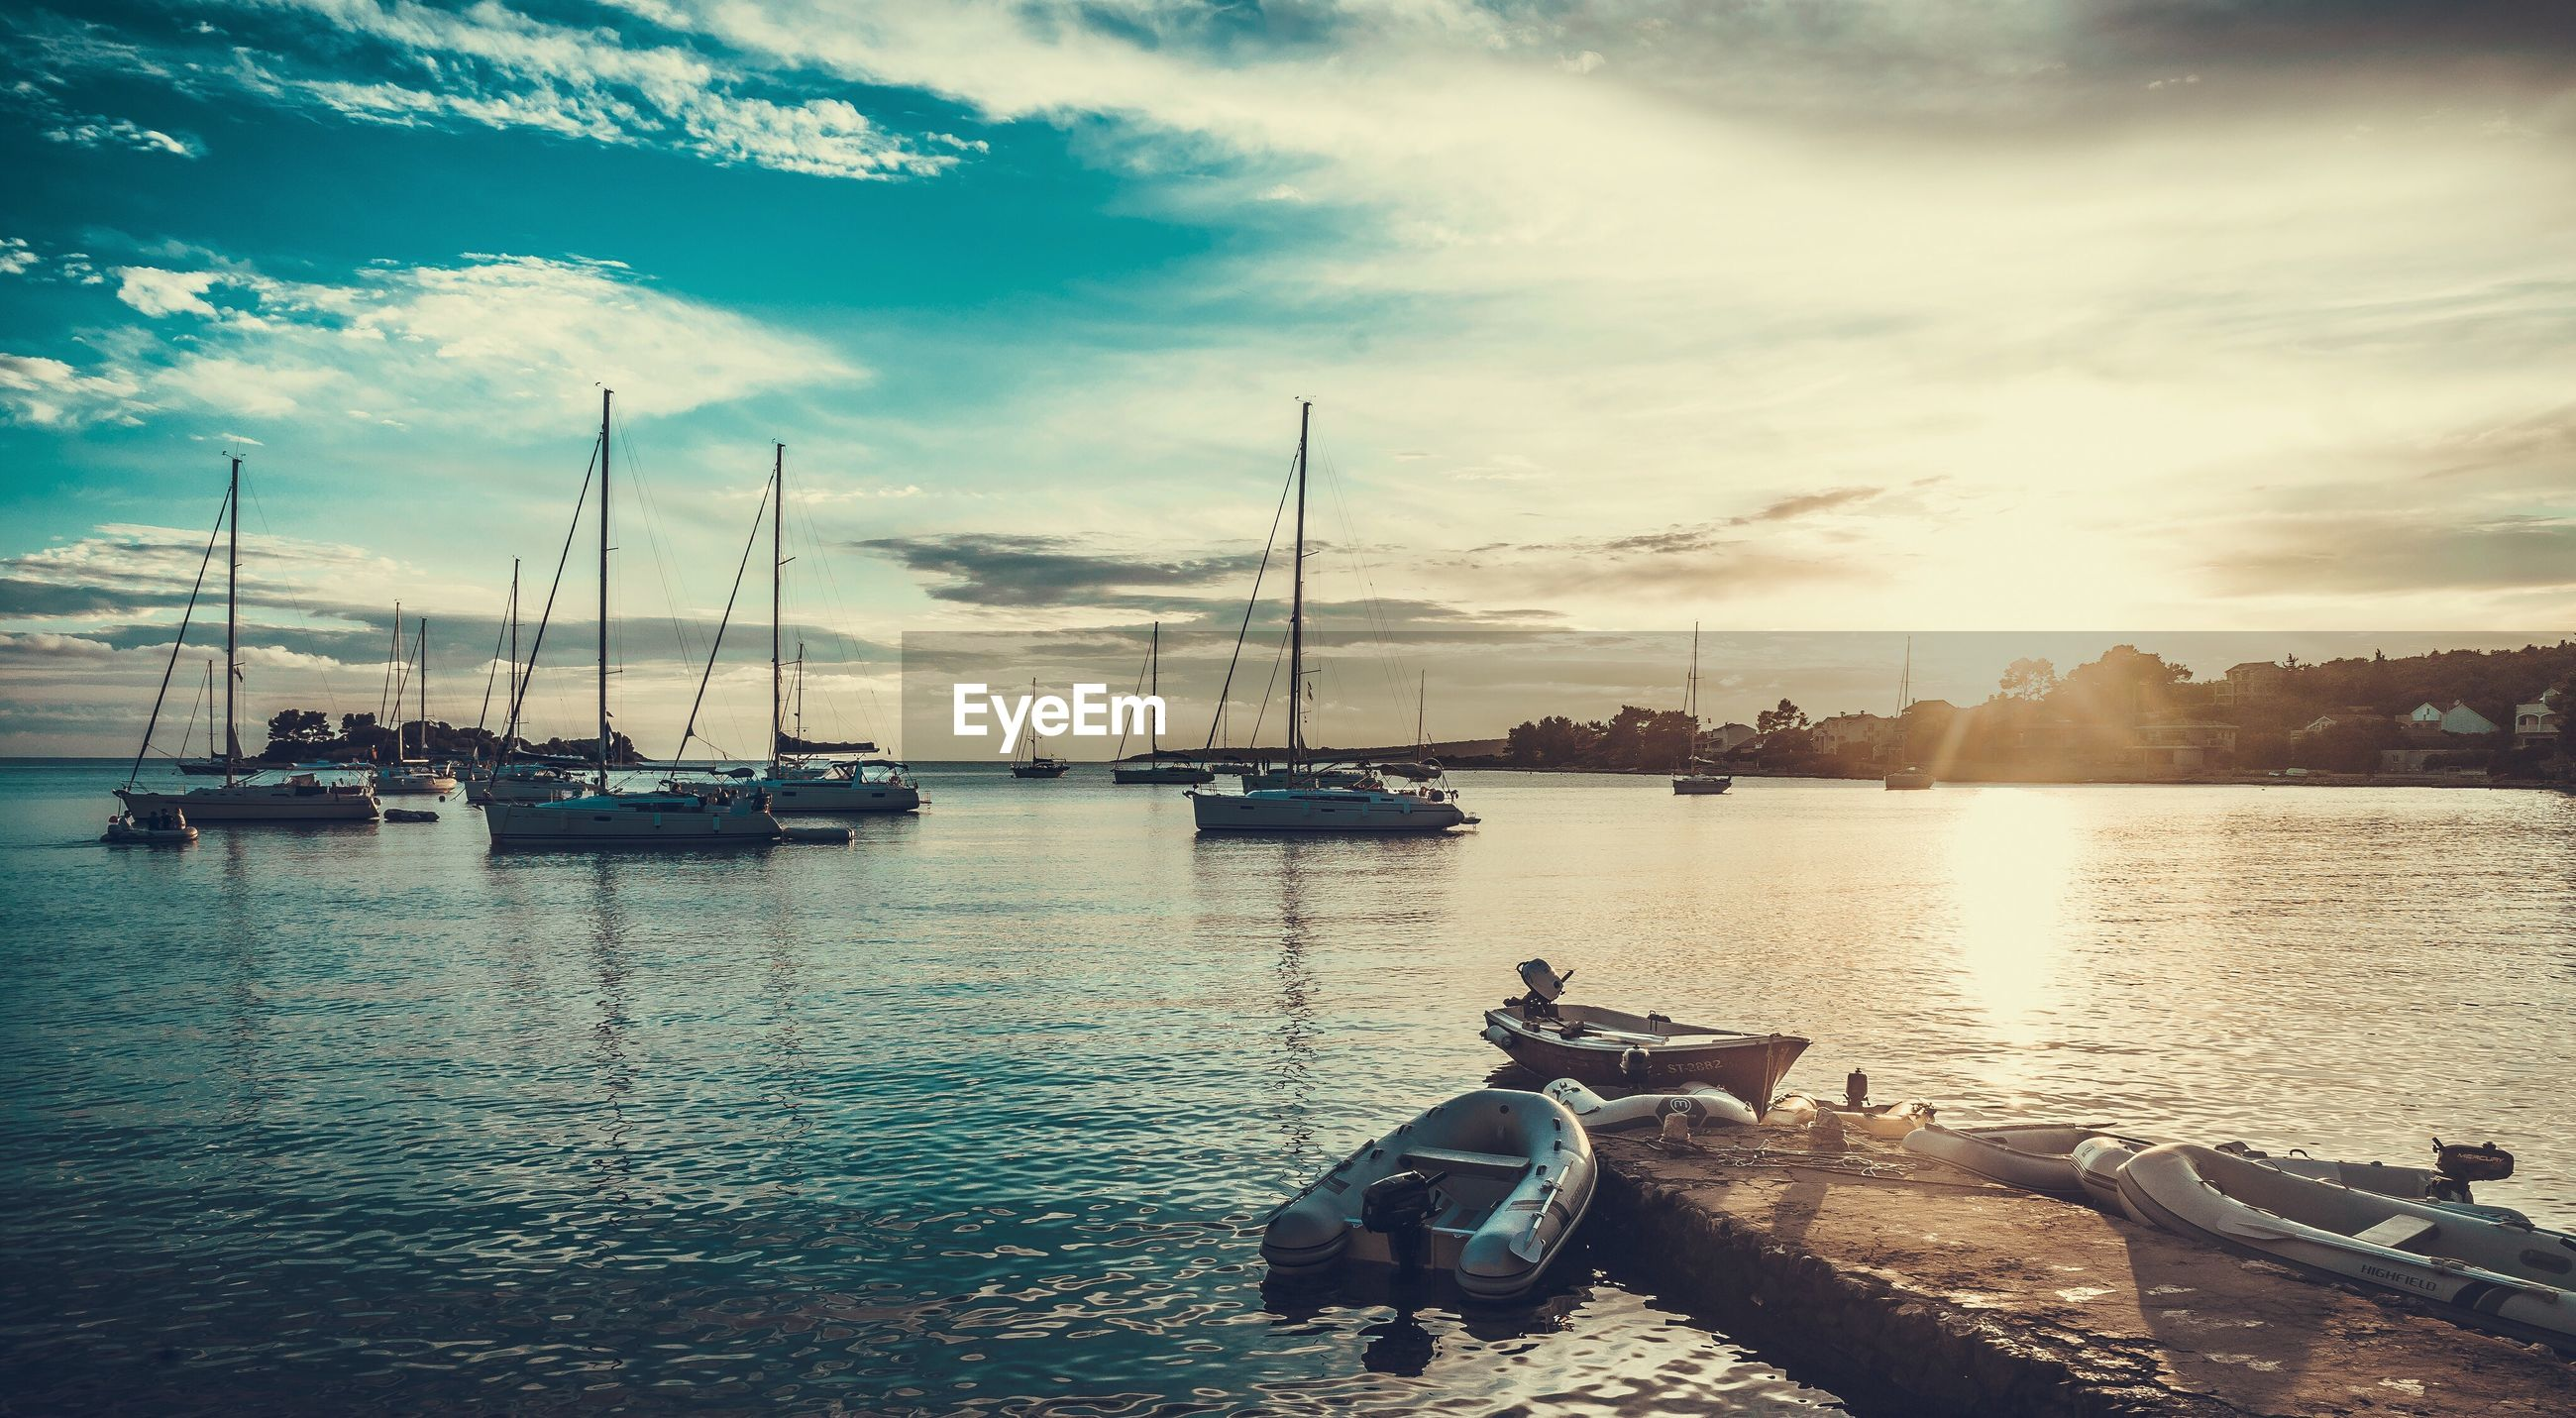 nautical vessel, transportation, boat, water, mode of transport, cloud, calm, sunlight, sky, moored, ocean, sun, sunbeam, sea, tranquility, tranquil scene, day, cloud - sky, nature, bright, harbor, lens flare, waterfront, scenics, no people, horizon over land